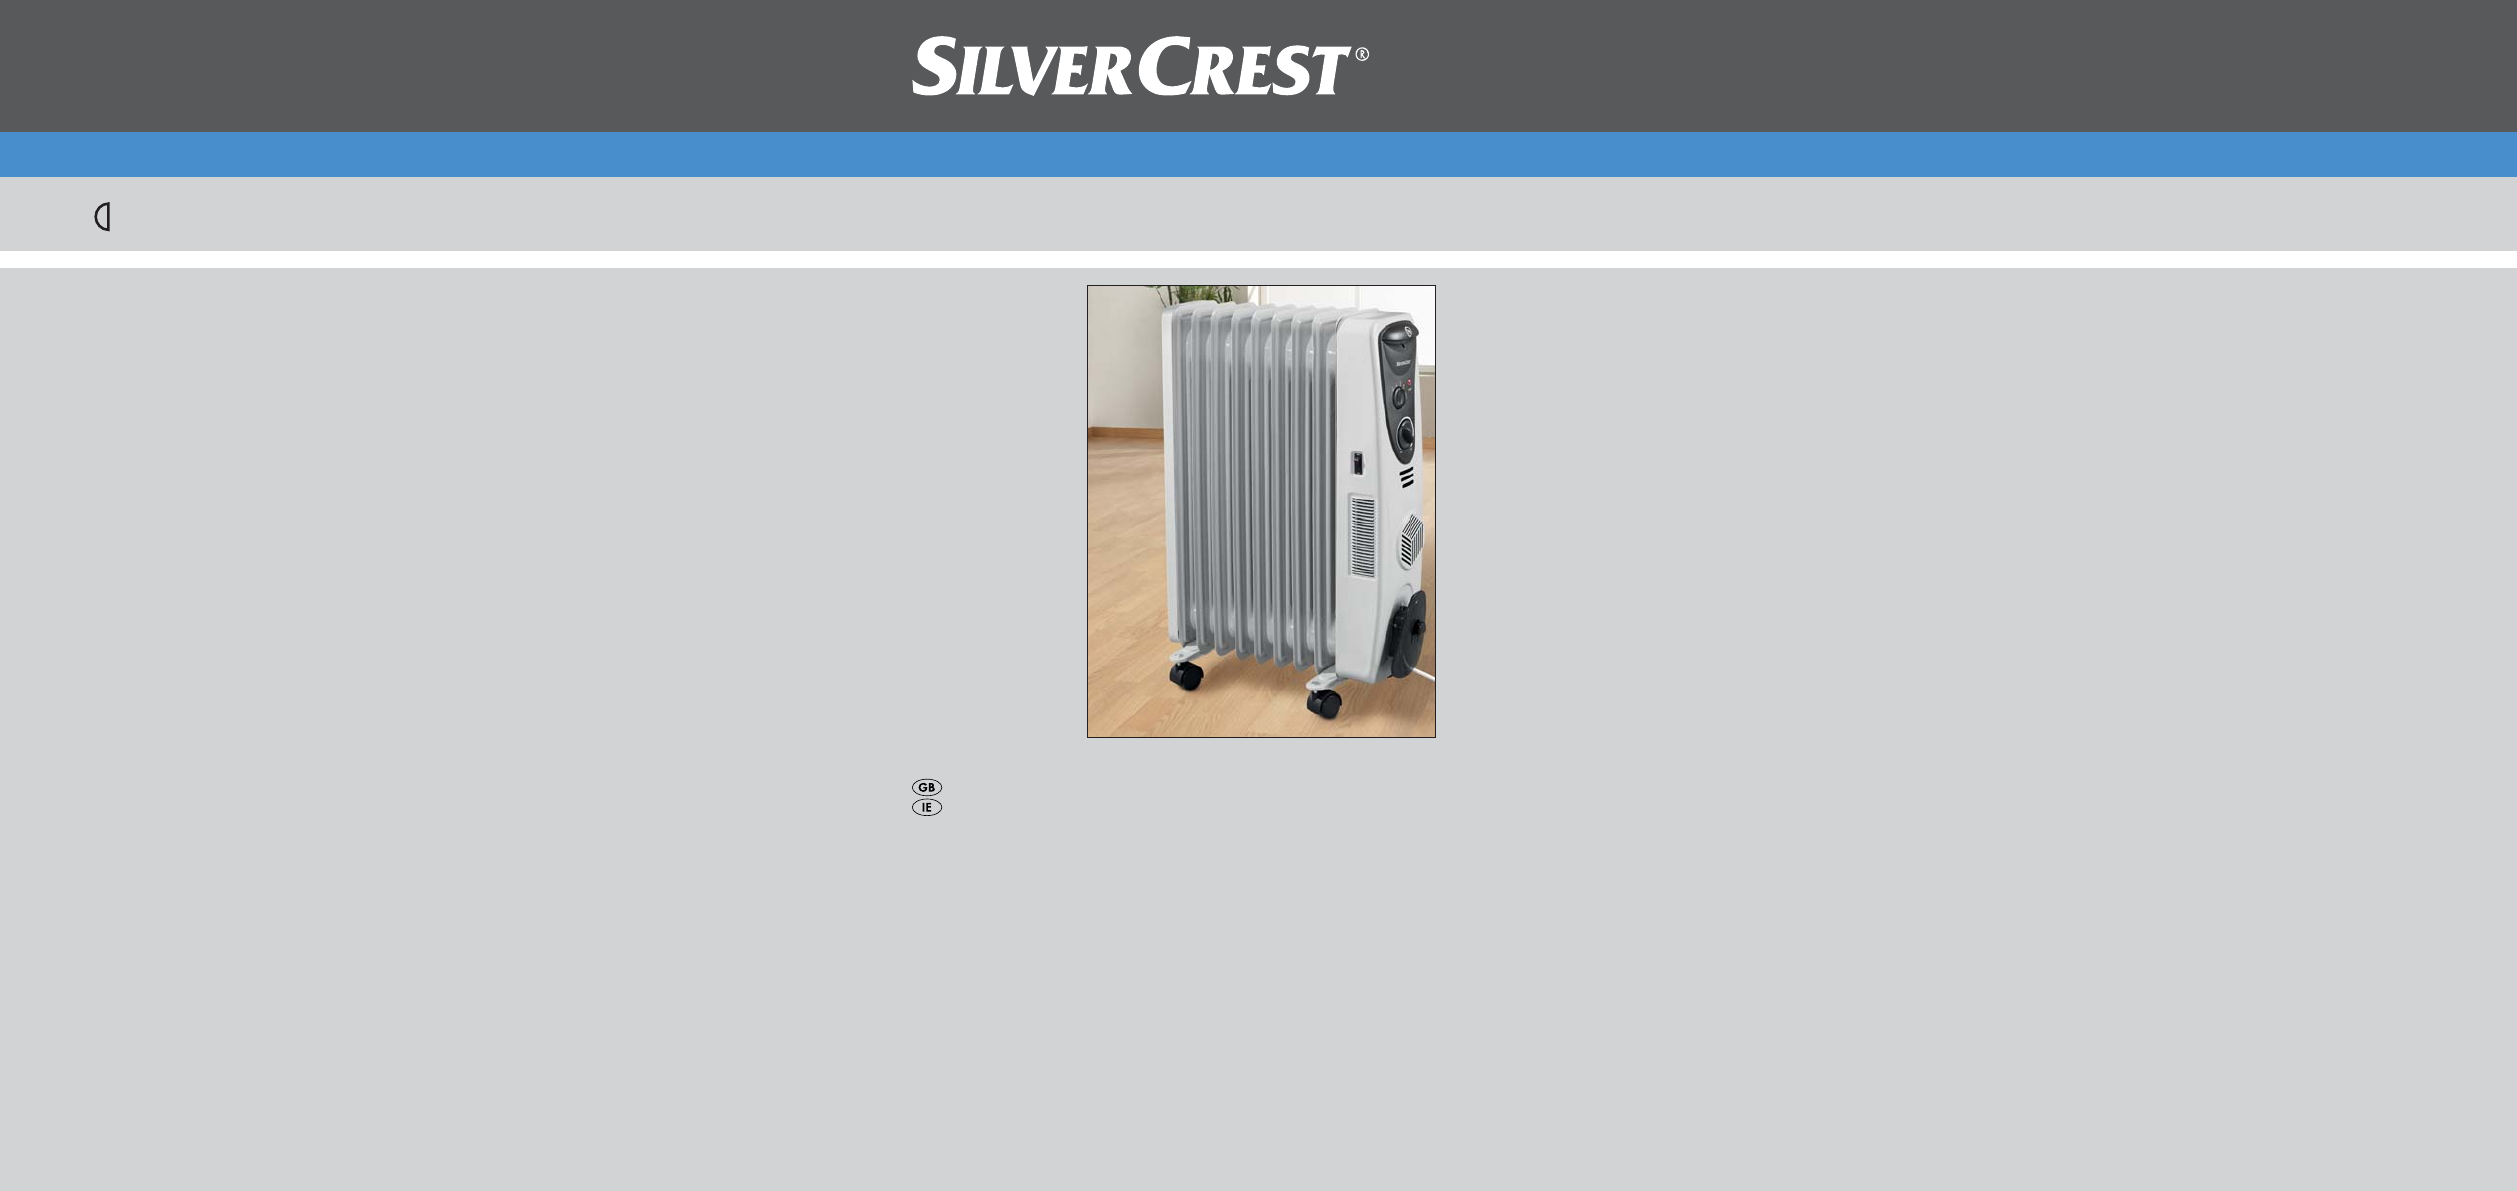 silvercrest electric heater sor 2600 a1 user guide manualsonline com rh homeappliance manualsonline com Avaya Phone Manual User Manual